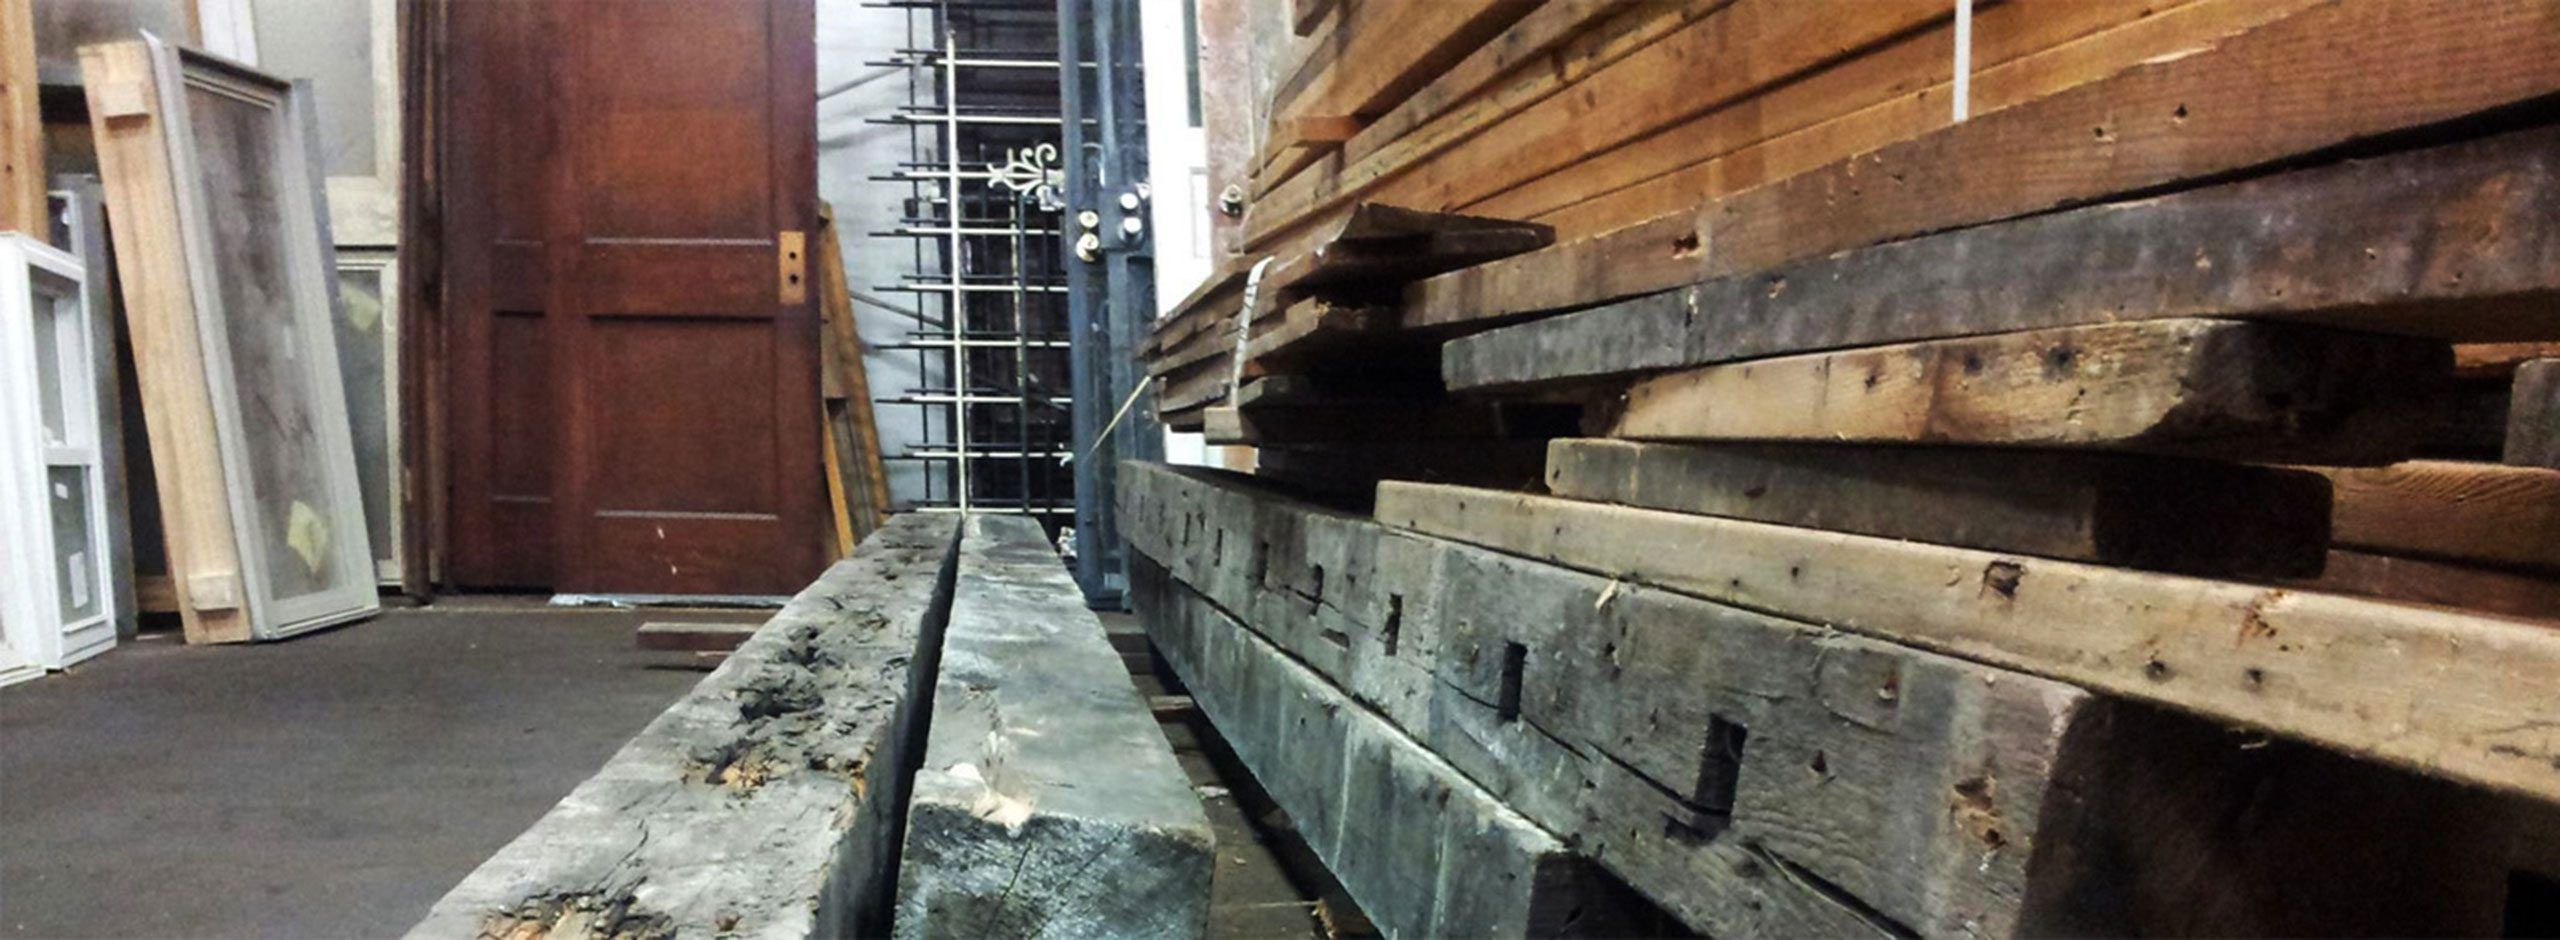 architectural salvage yards near me